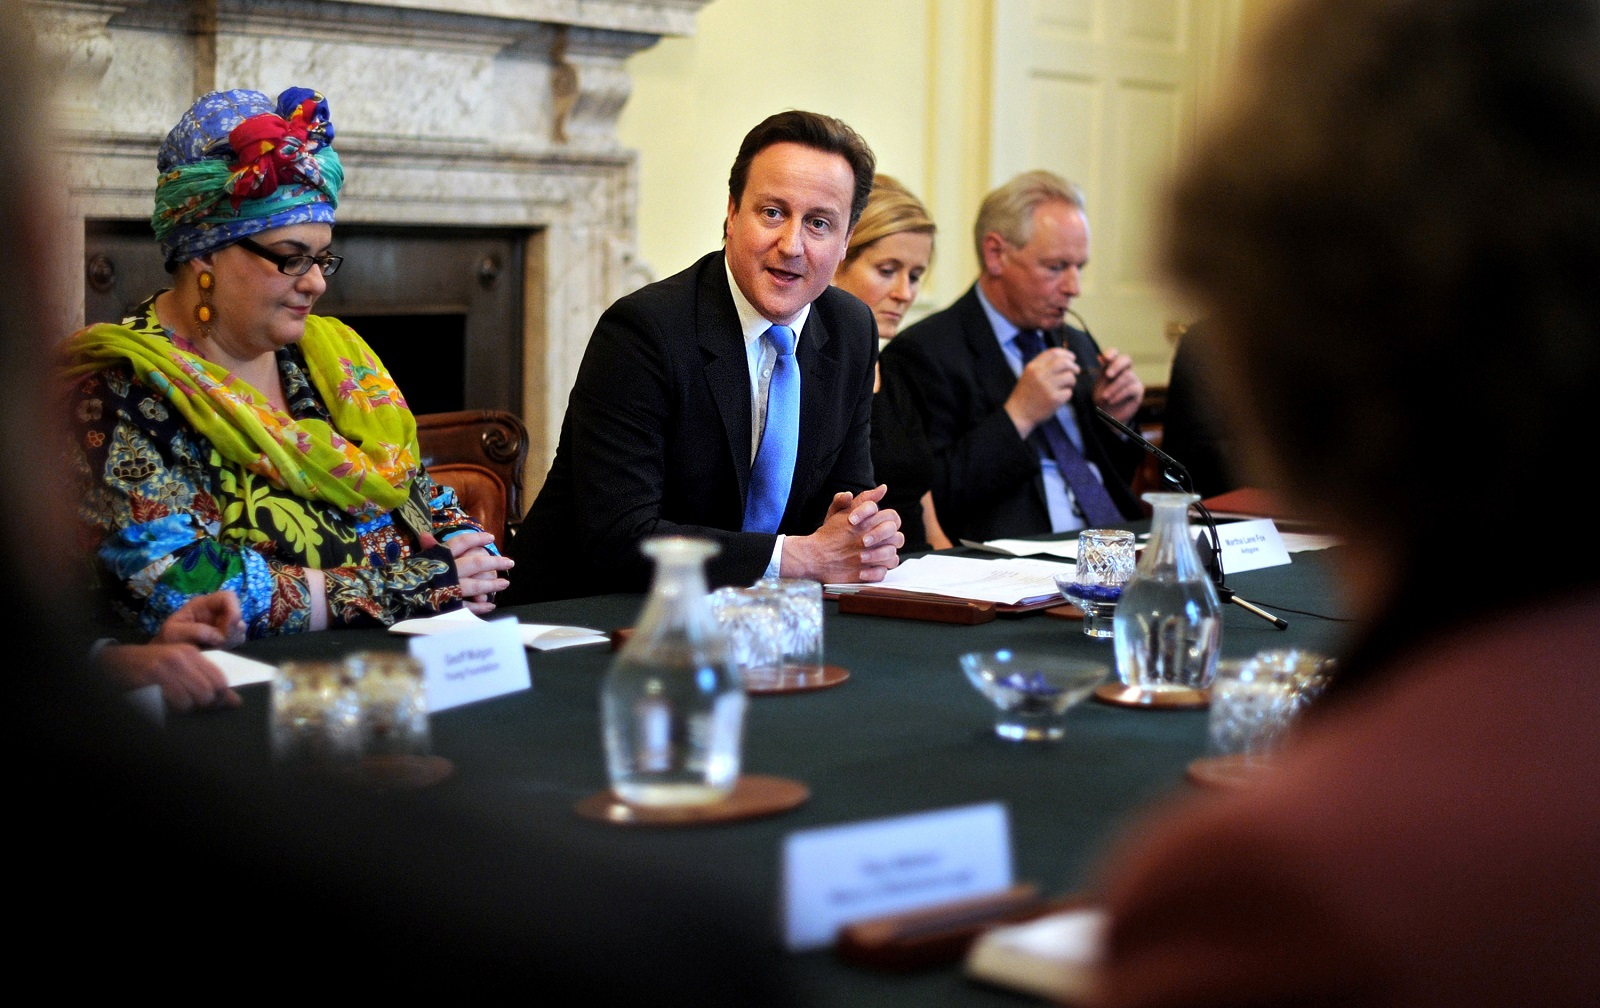 Camila Batmanghelidjh and David Cameron